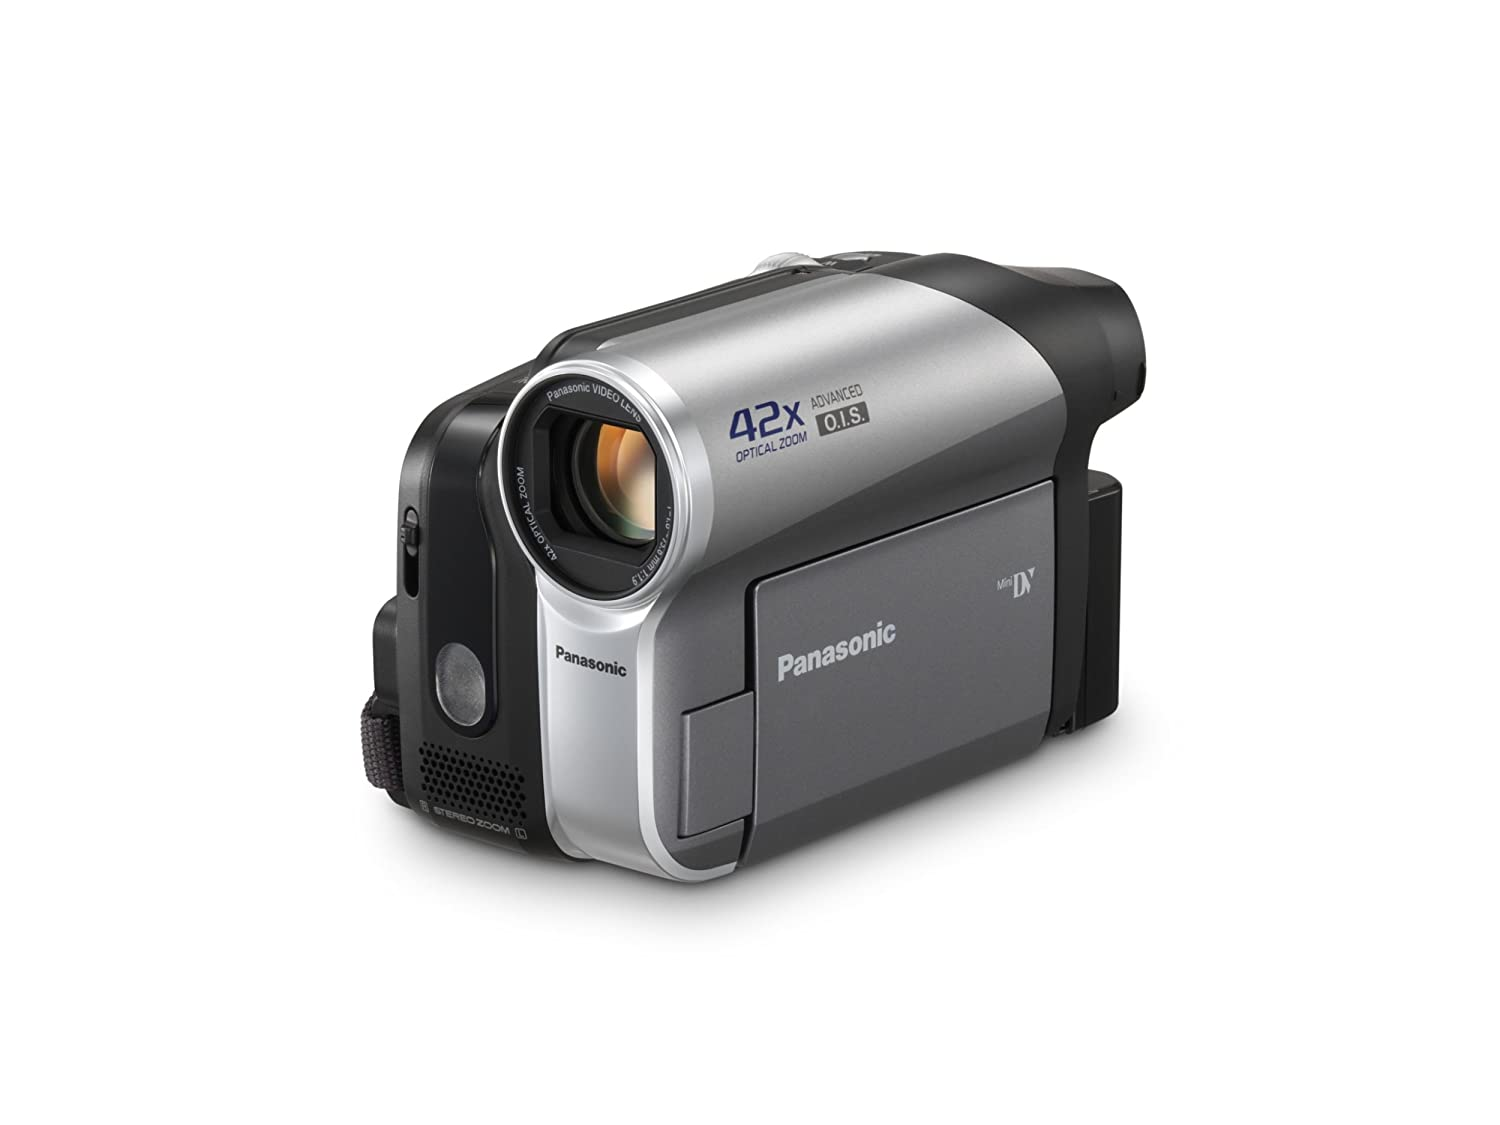 amazon com panasonic pv gs90 minidv camcorder with 42x optical rh amazon com Nikon 42X Optical Zoom Nikkor Glass Lens Panasonic HDD 42X Optical Zoom